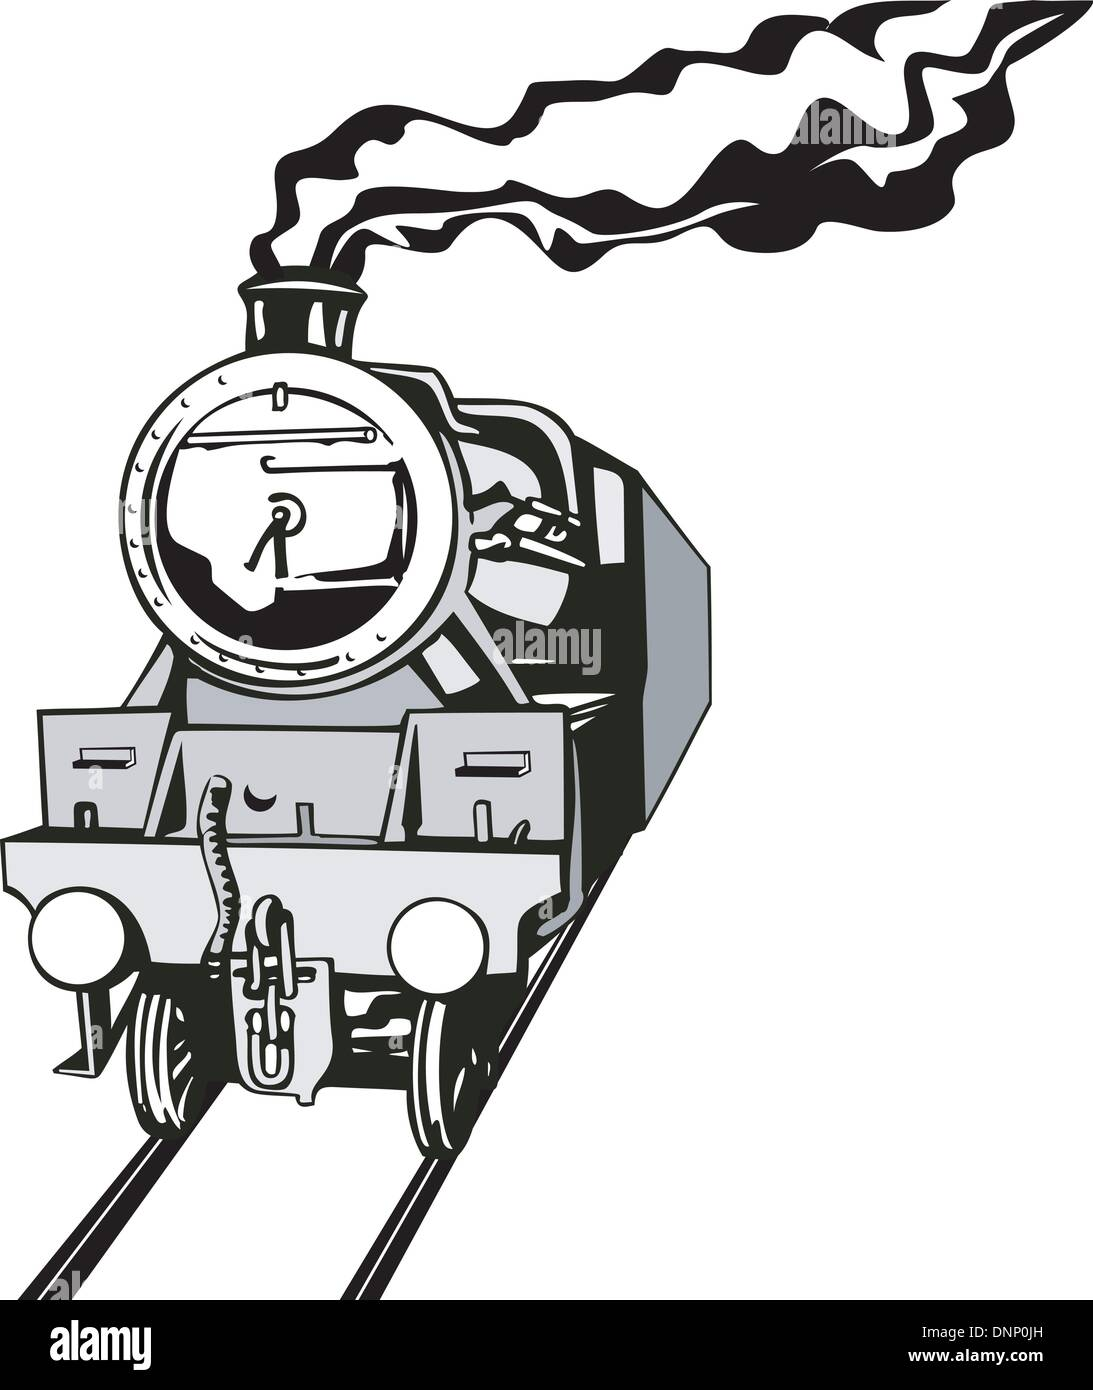 Illustration Of A Vintage Train Front View In Black And White On Isolated Background Done Retro Style